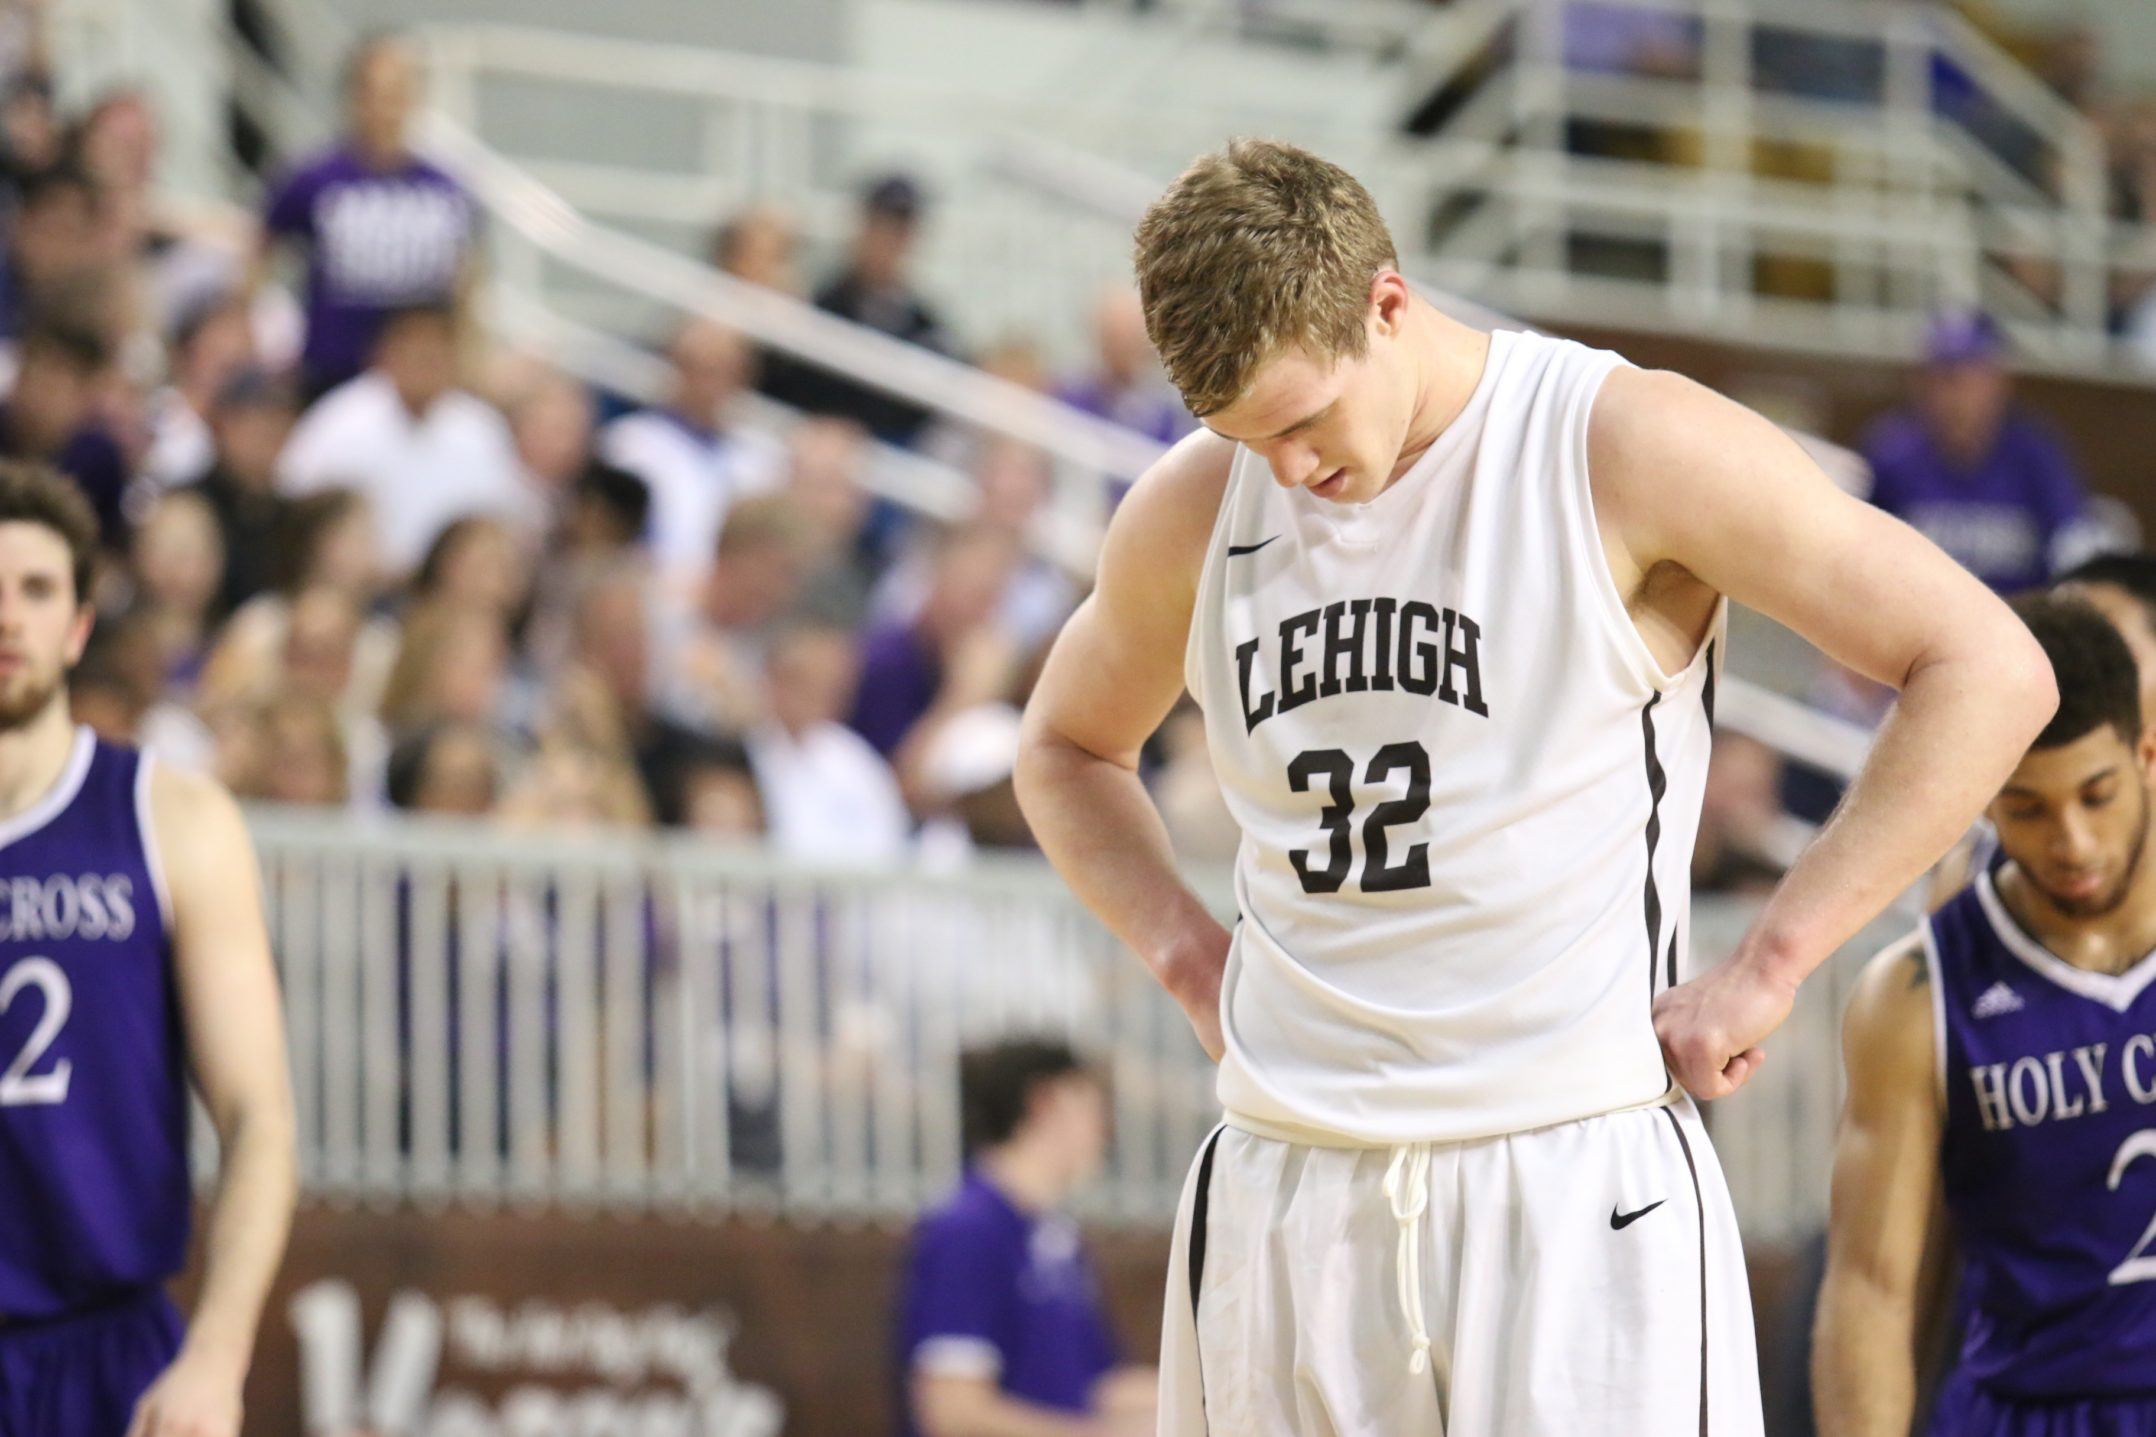 Lehigh junior Tim Kempton sinks his head in defeat after the Patriot League Championship game on Wednesday, March 9, 2016. The Mountain Hawks lost a tough battle to Holy Cross, losing 56-59. (Gracie Chavers/BW staff)